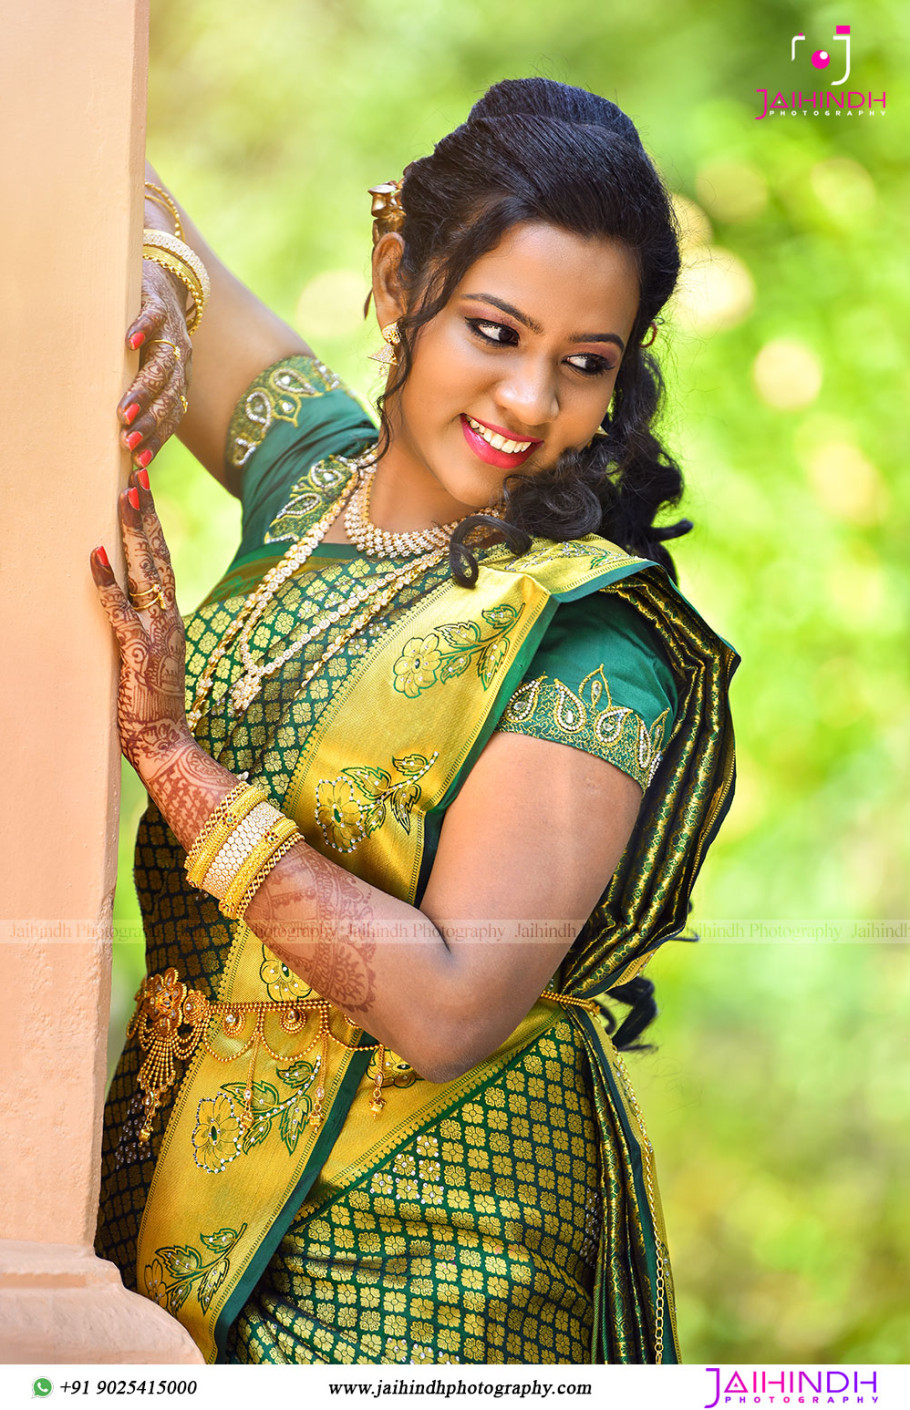 Best Photographers In Aruppukottai, Marriage Photography  In Aruppukottai, Professional Wedding Photographers In Aruppukottai, Wedding Photographers In Aruppukottai, Wedding Photography In Aruppukottai, Cinematic Wedding Photographer In Aruppukottai, Cinematic Photography In Aruppukottai, Creative Wedding Photographer In Aruppukottai,